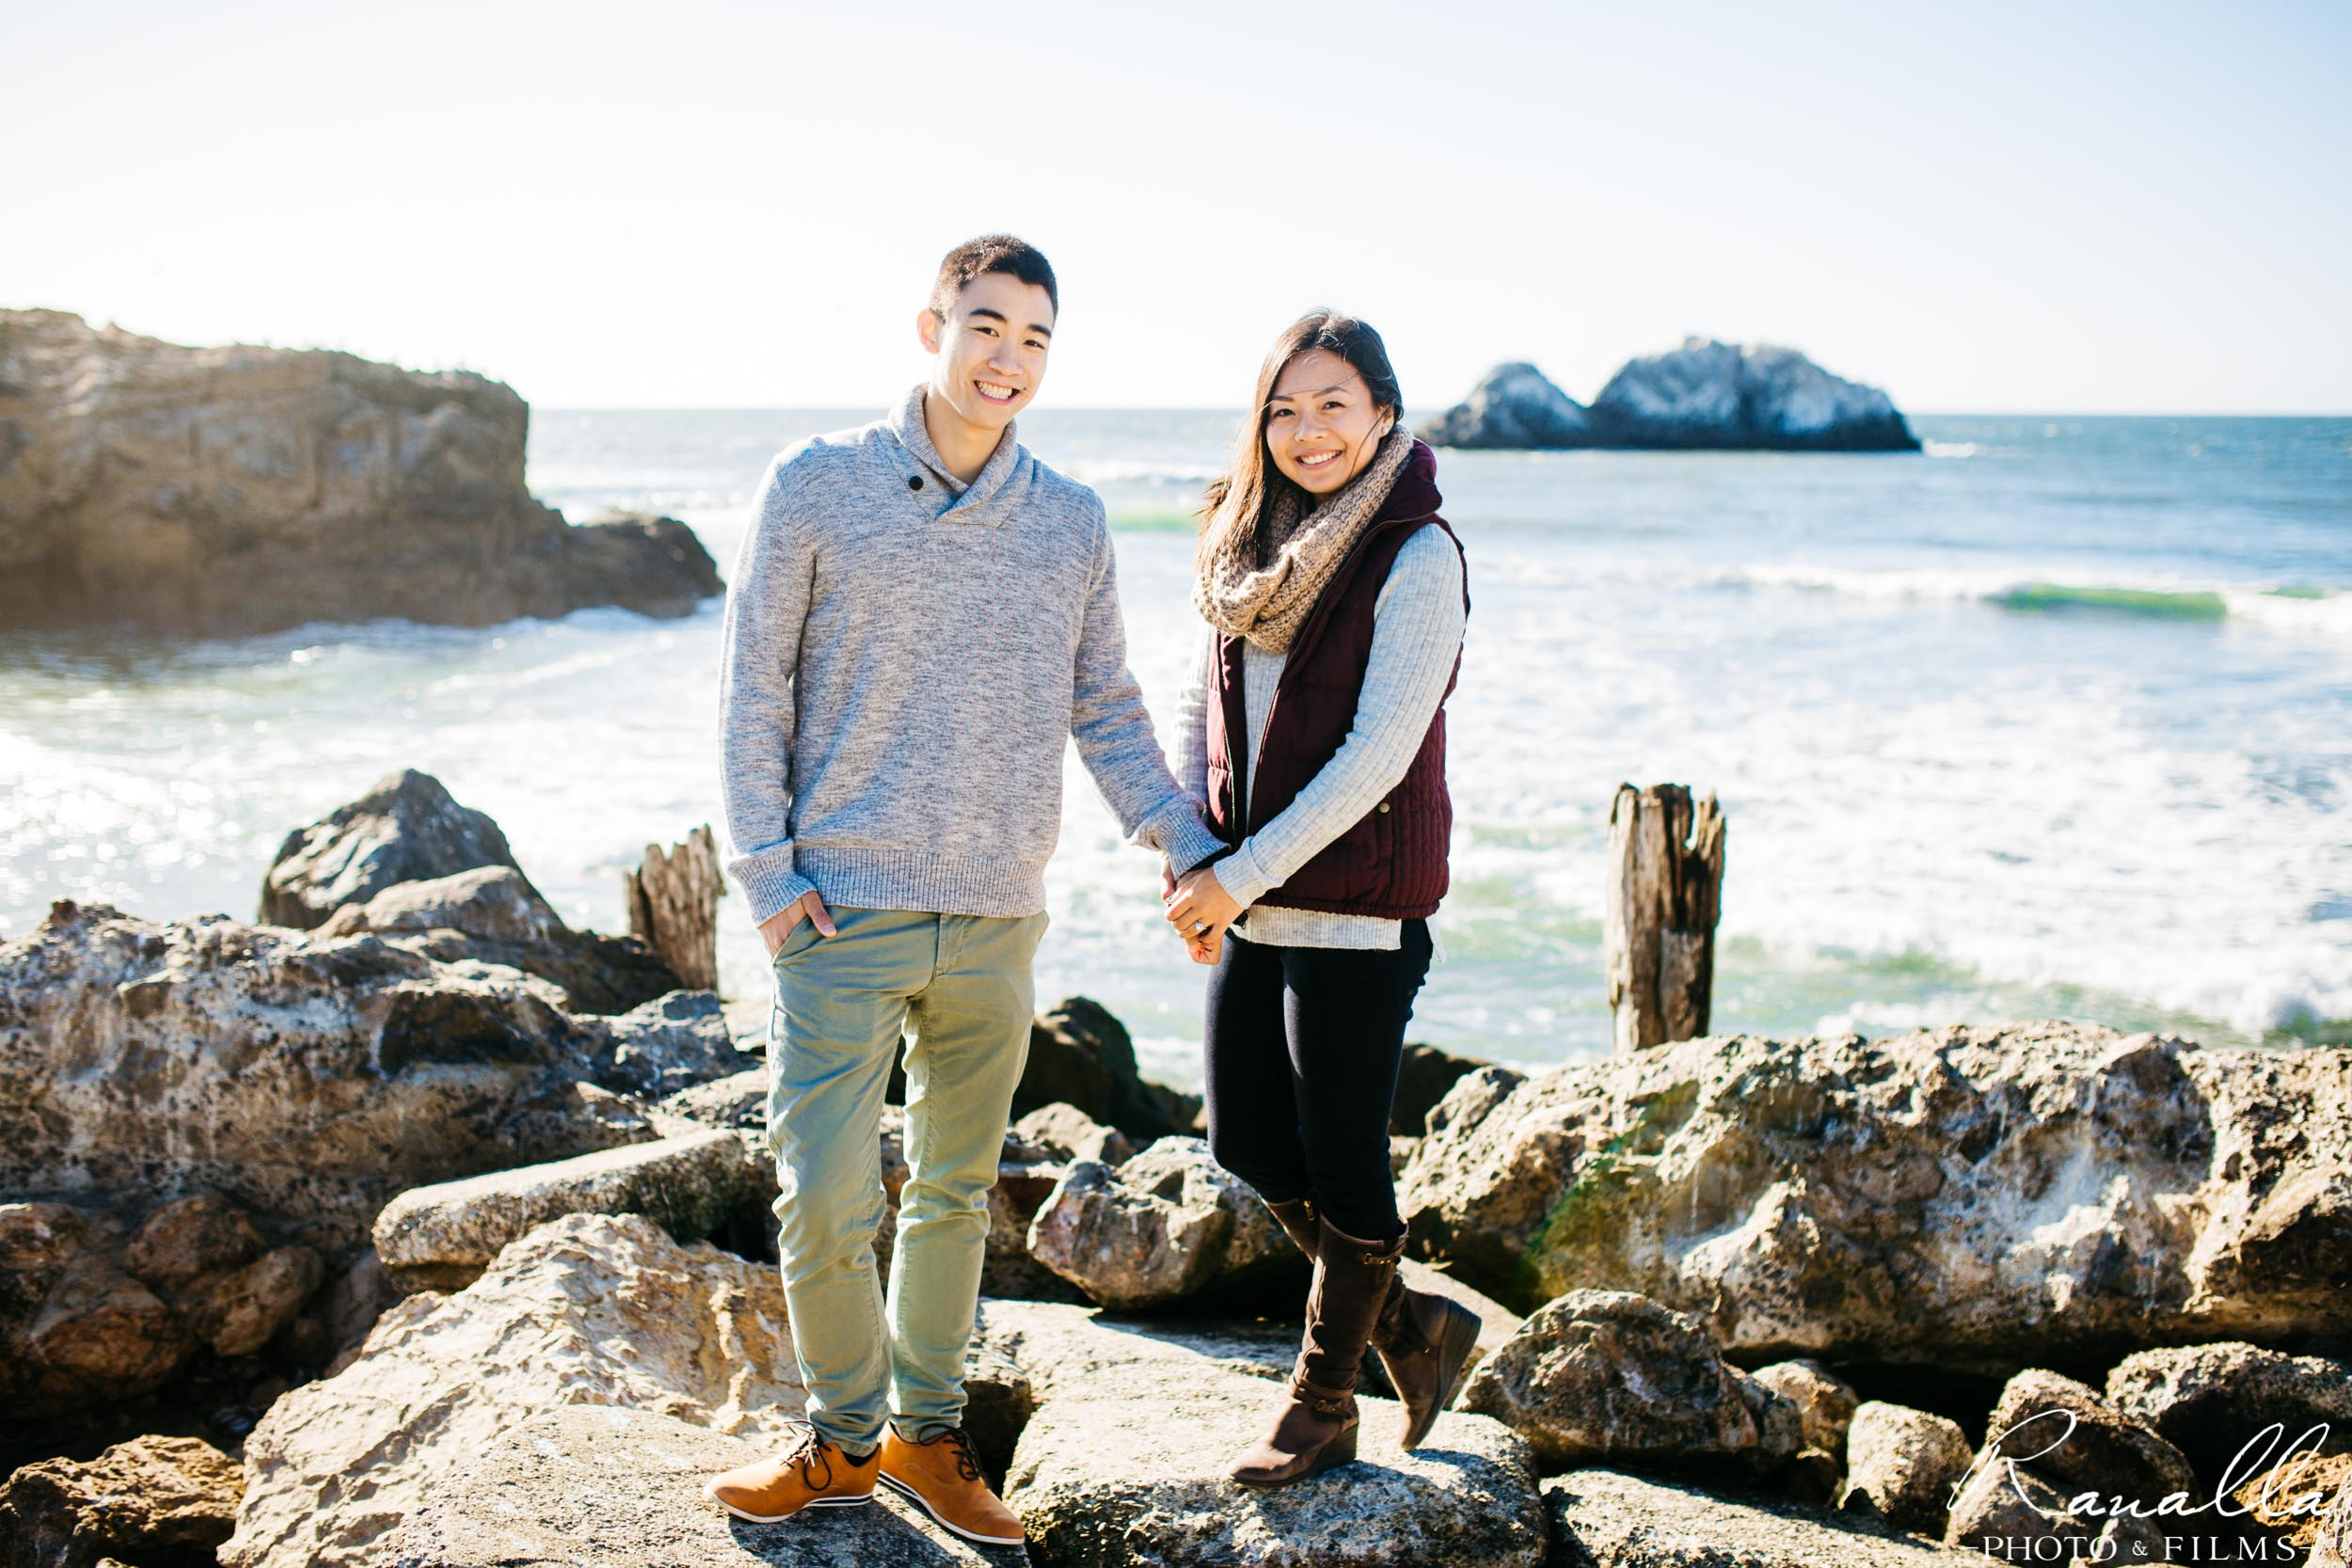 San Francisco Engagement Photography- Sutro Baths- San Francisco Coast- Lands End Wedding Photos- Ranalla Photo & Films